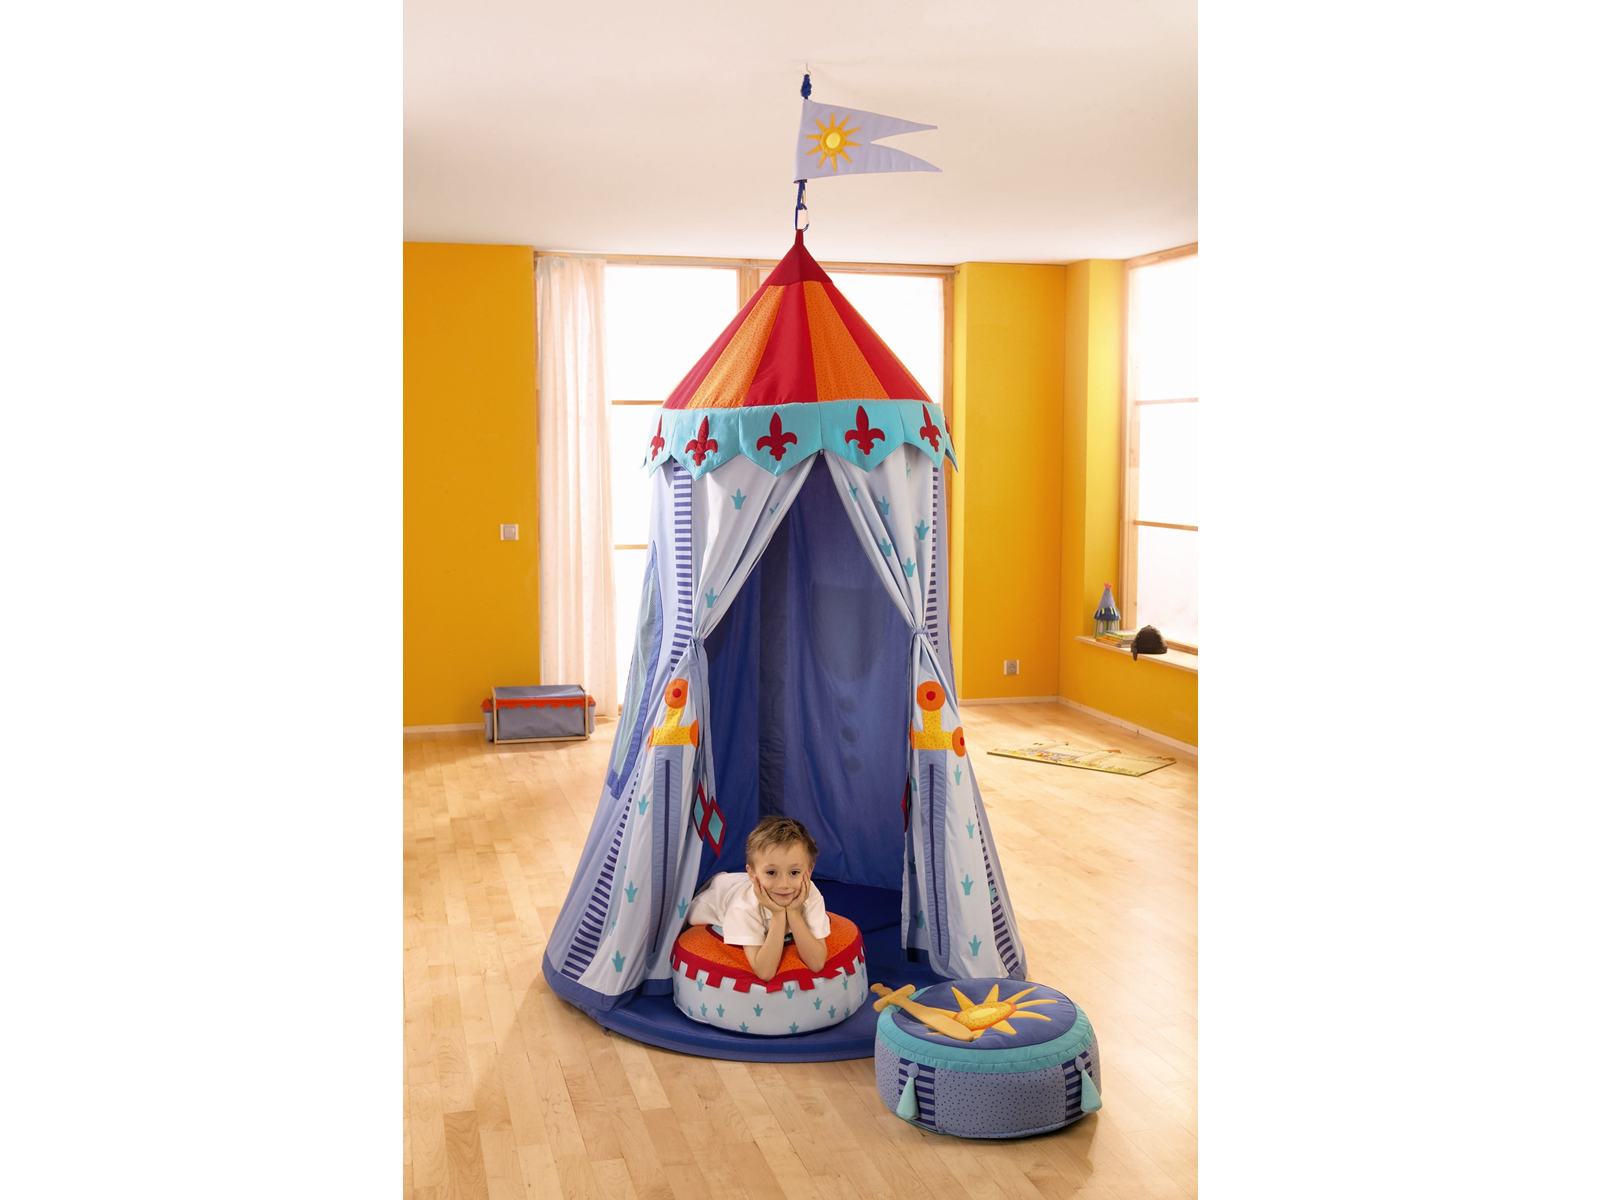 Haba Knight's Hanging Tent - Buy Online - Playhouse of Dreams  - 1